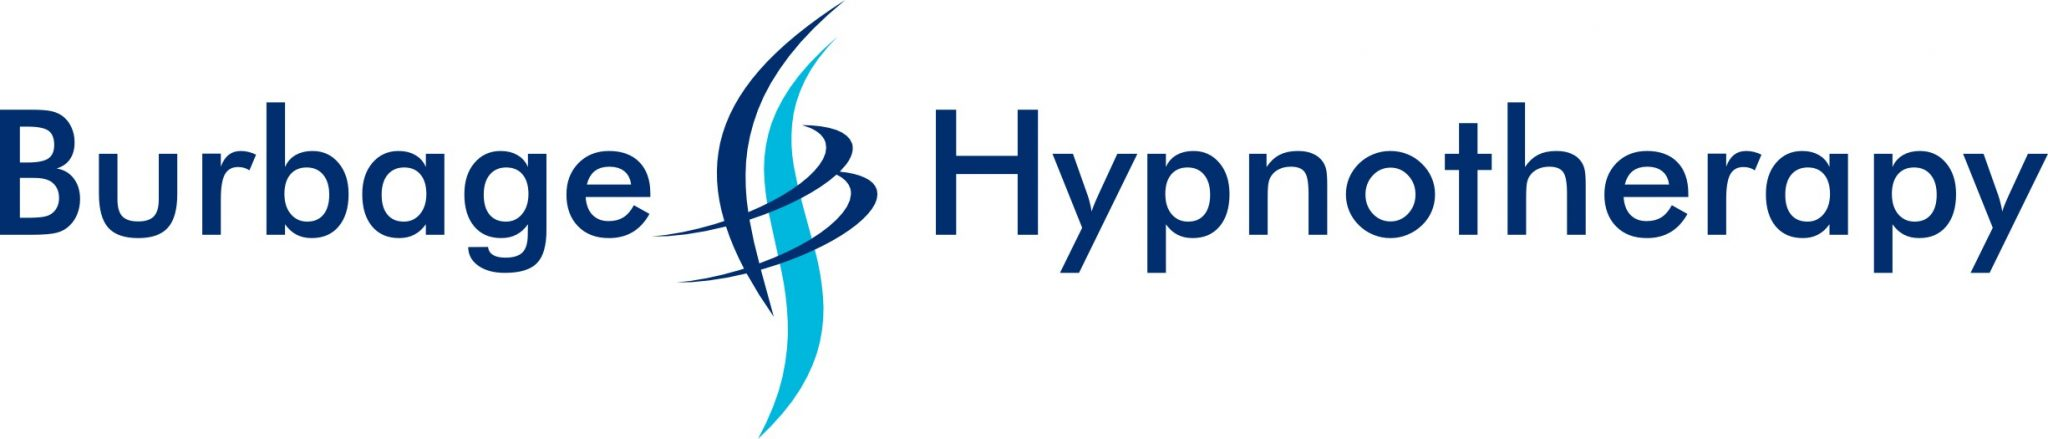 Burbage Hypnotherapy